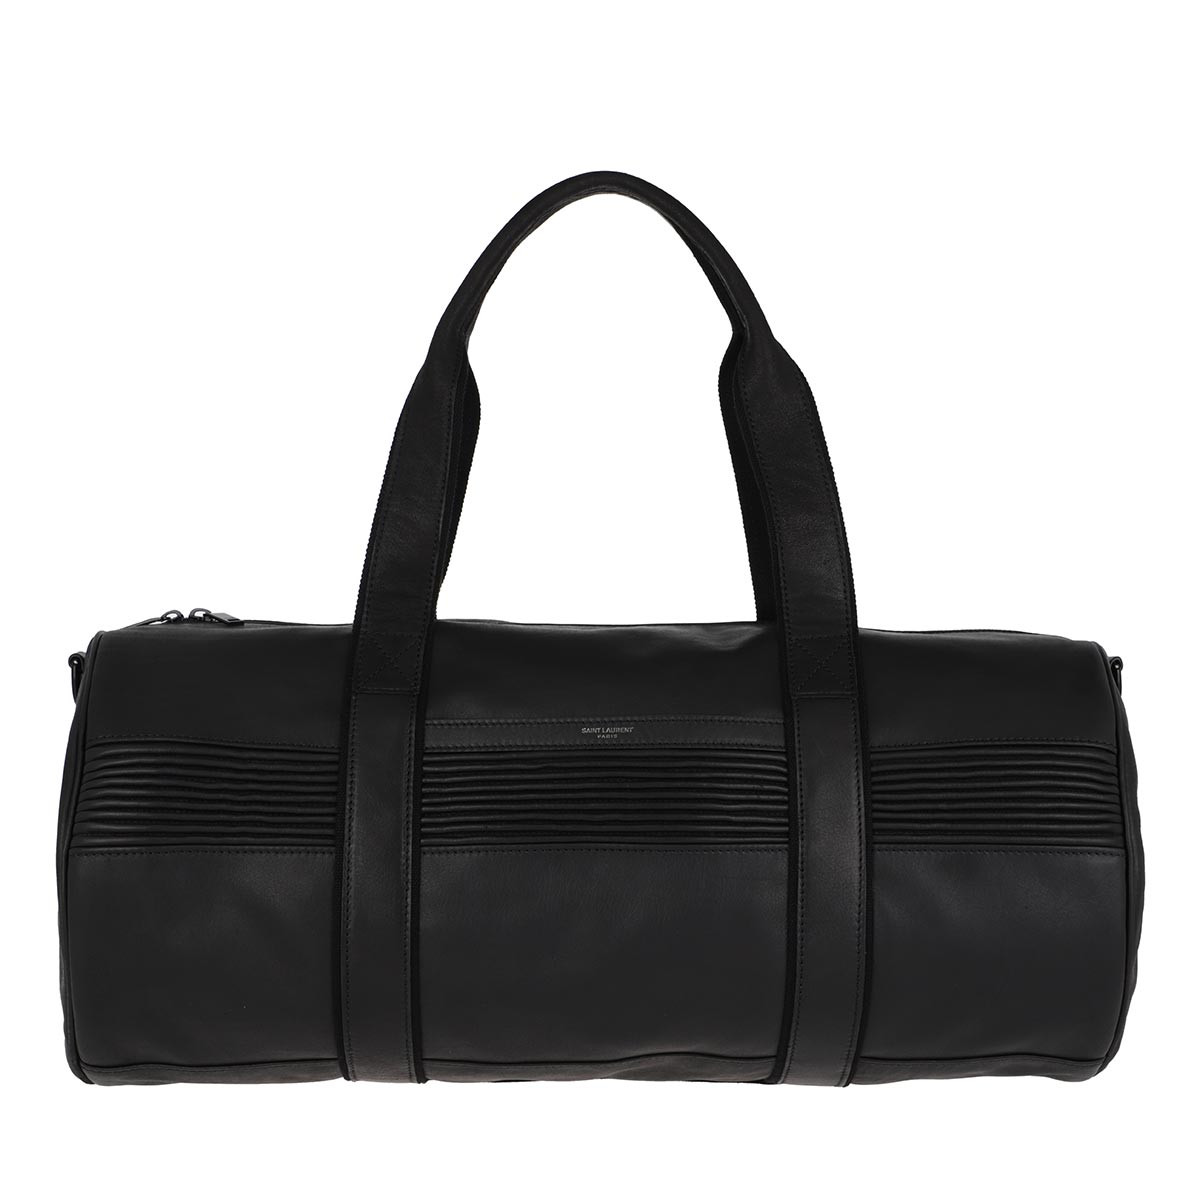 Saint Laurent Reisetasche - Noé Sport Bag Smooth Leather Black - in schwarz - für Damen